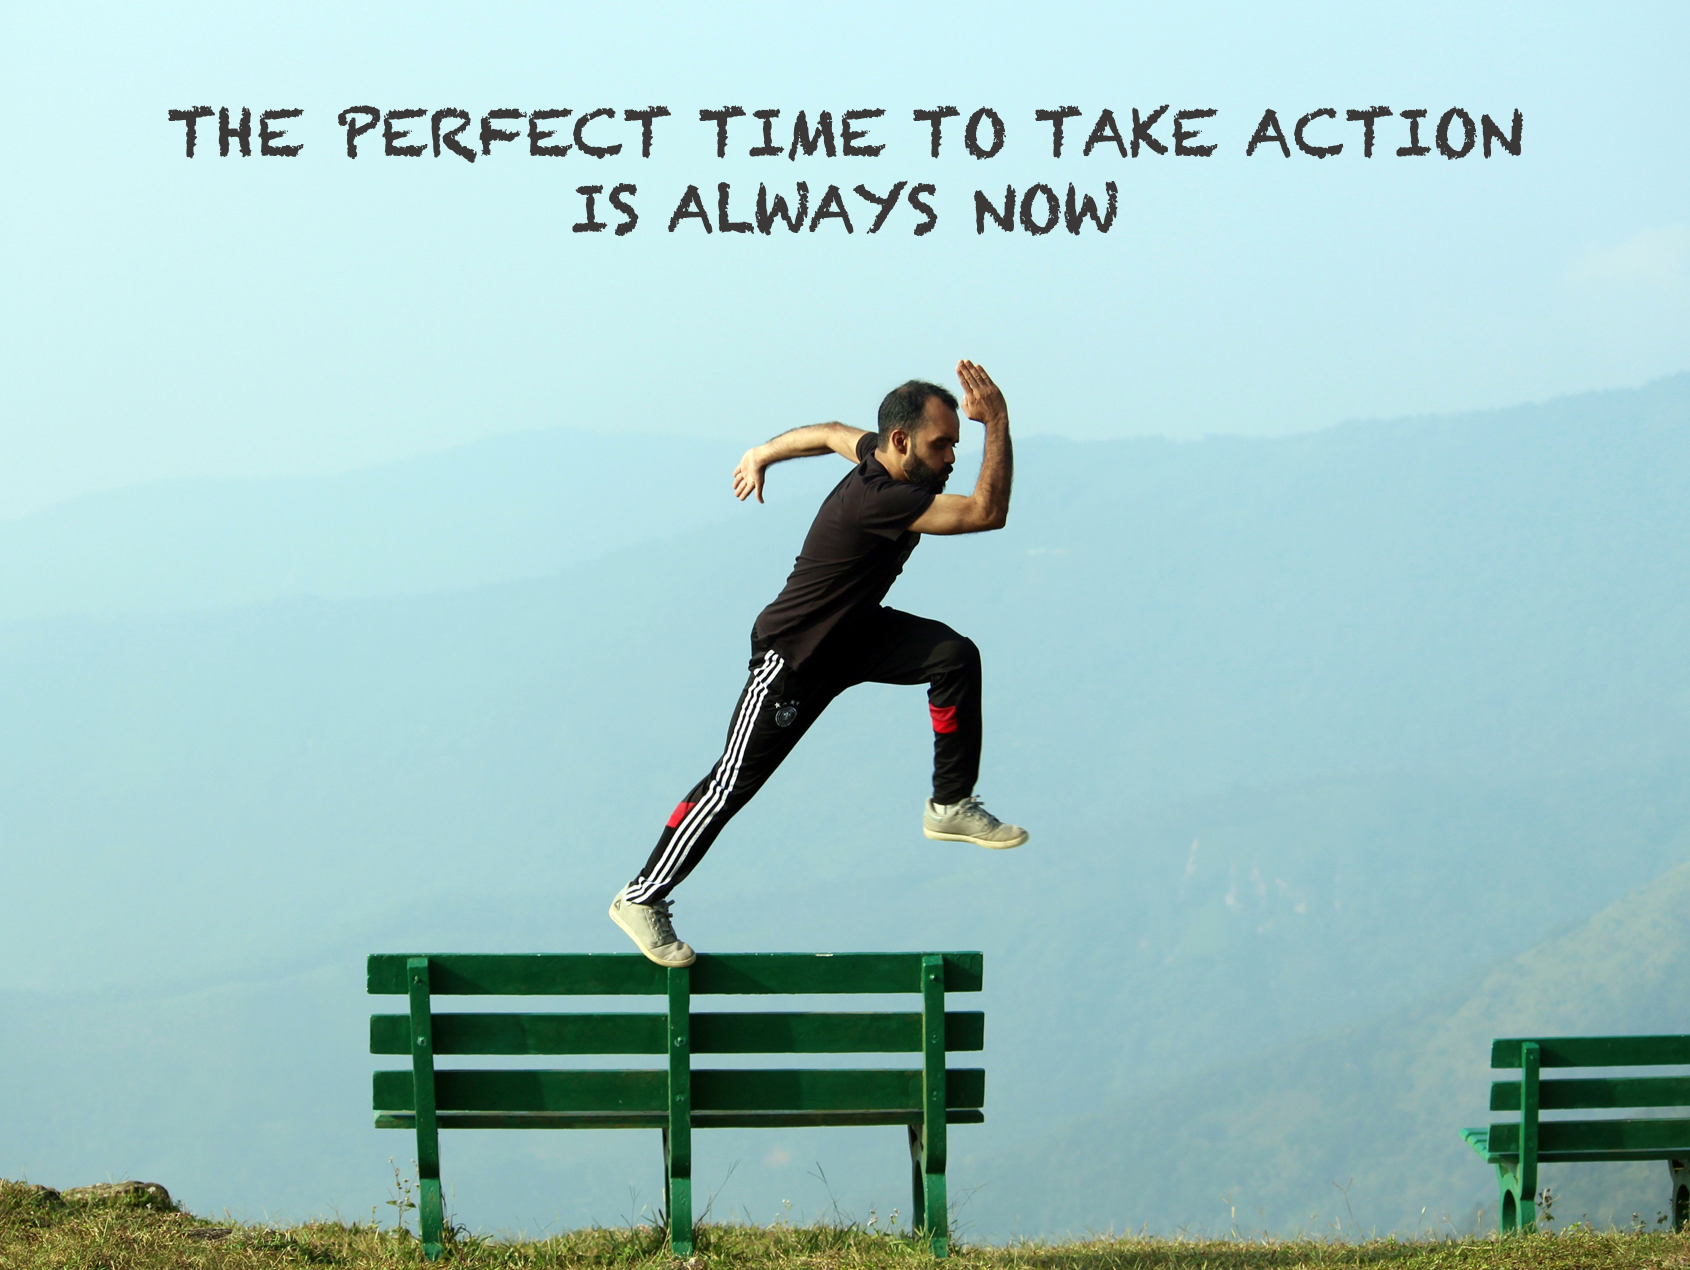 [Image] The perfect time to take action is always now.